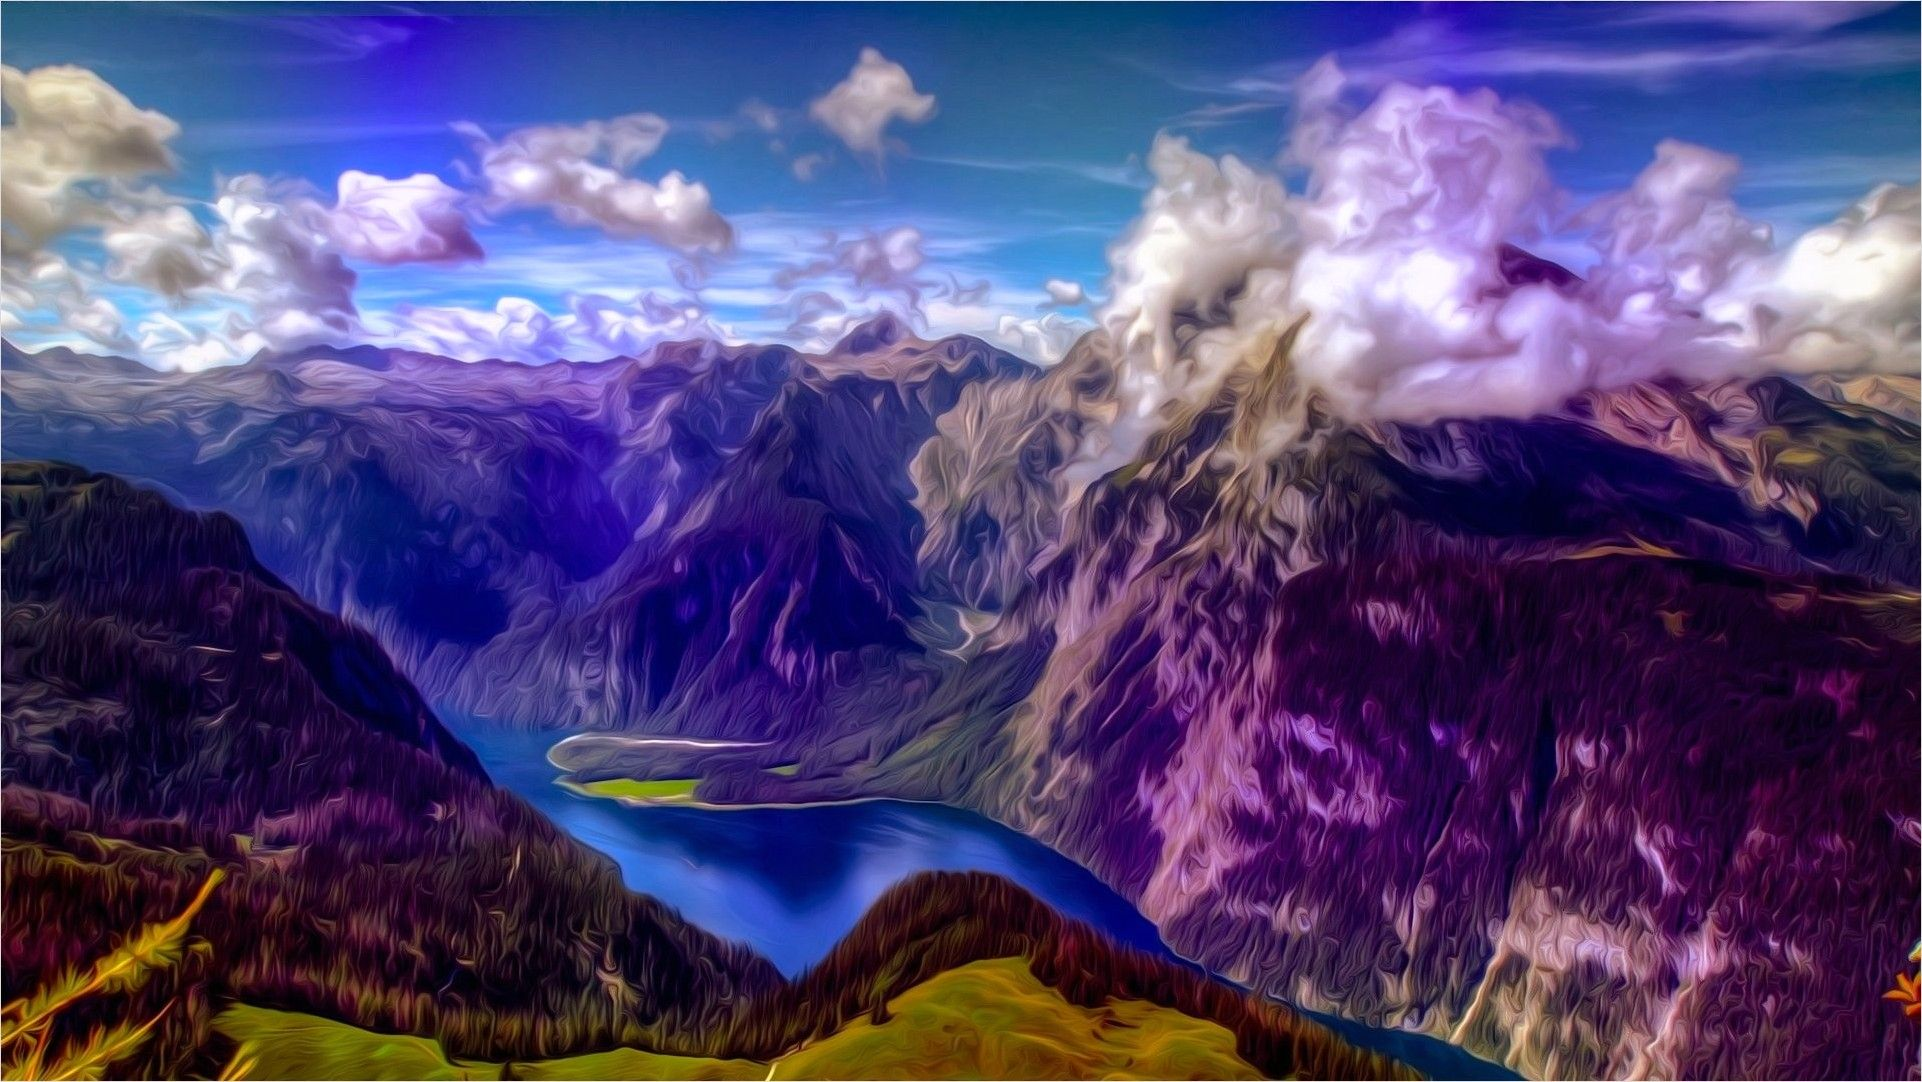 4k Trippy Nature Wallpaper Nature Wallpaper Nature Photo Wallpaper Trippy Wallpaper